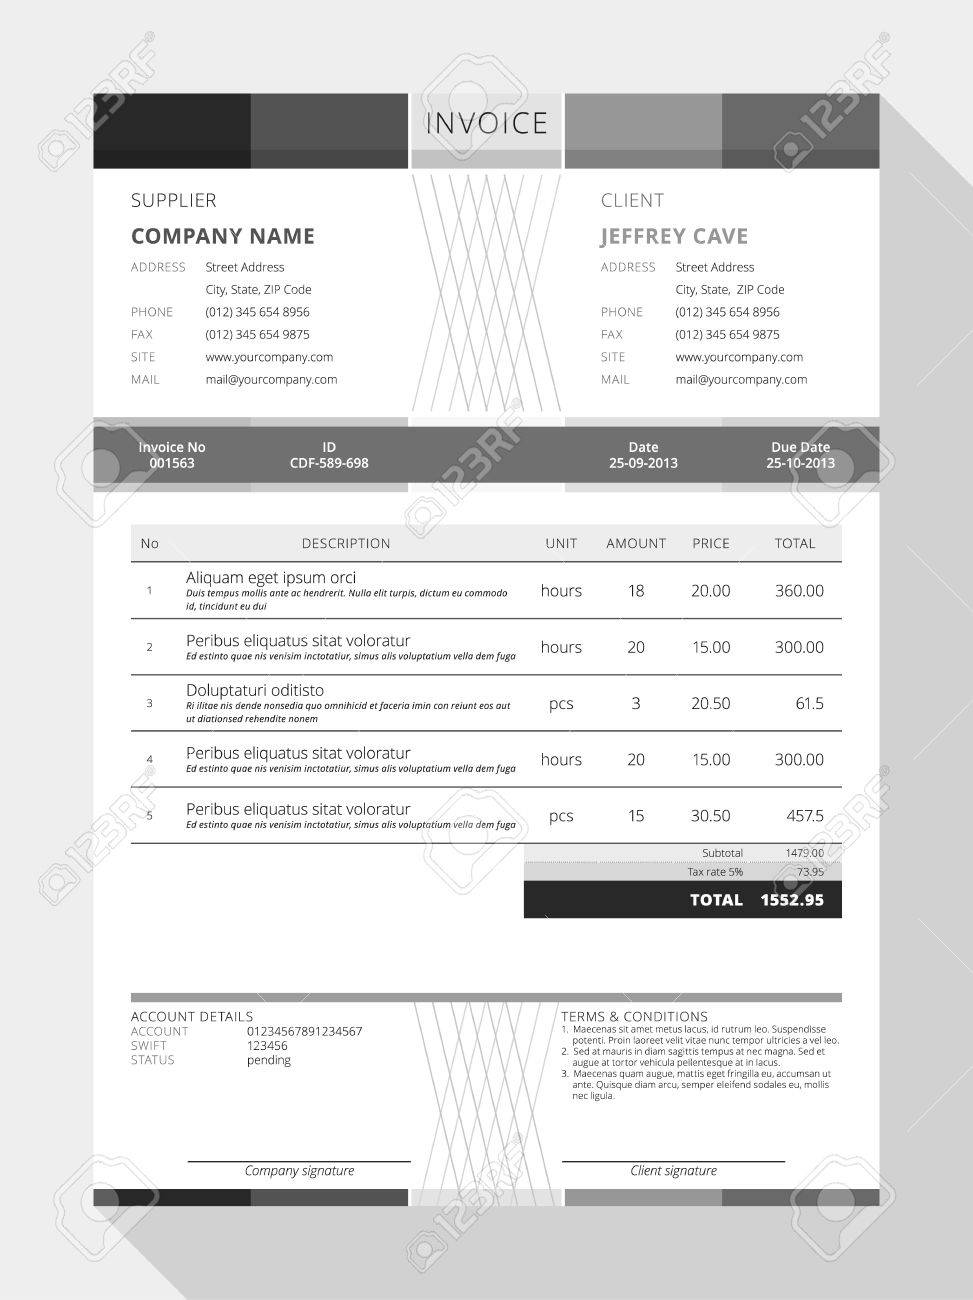 Reliefworkersus  Marvelous Design An Invoice  Professional Graphic Design Invoice  With Exquisite Vector Customizable Invoice Form Template Design Vector   Design An Invoice With Delectable Invoice Template Consulting Also Basic Invoice Pdf In Addition Car Dealer Invoice Pricing And Federal Express Commercial Invoice As Well As Invoice Statements Additionally What Are Invoices In Business From Happytomco With Reliefworkersus  Exquisite Design An Invoice  Professional Graphic Design Invoice  With Delectable Vector Customizable Invoice Form Template Design Vector   Design An Invoice And Marvelous Invoice Template Consulting Also Basic Invoice Pdf In Addition Car Dealer Invoice Pricing From Happytomco